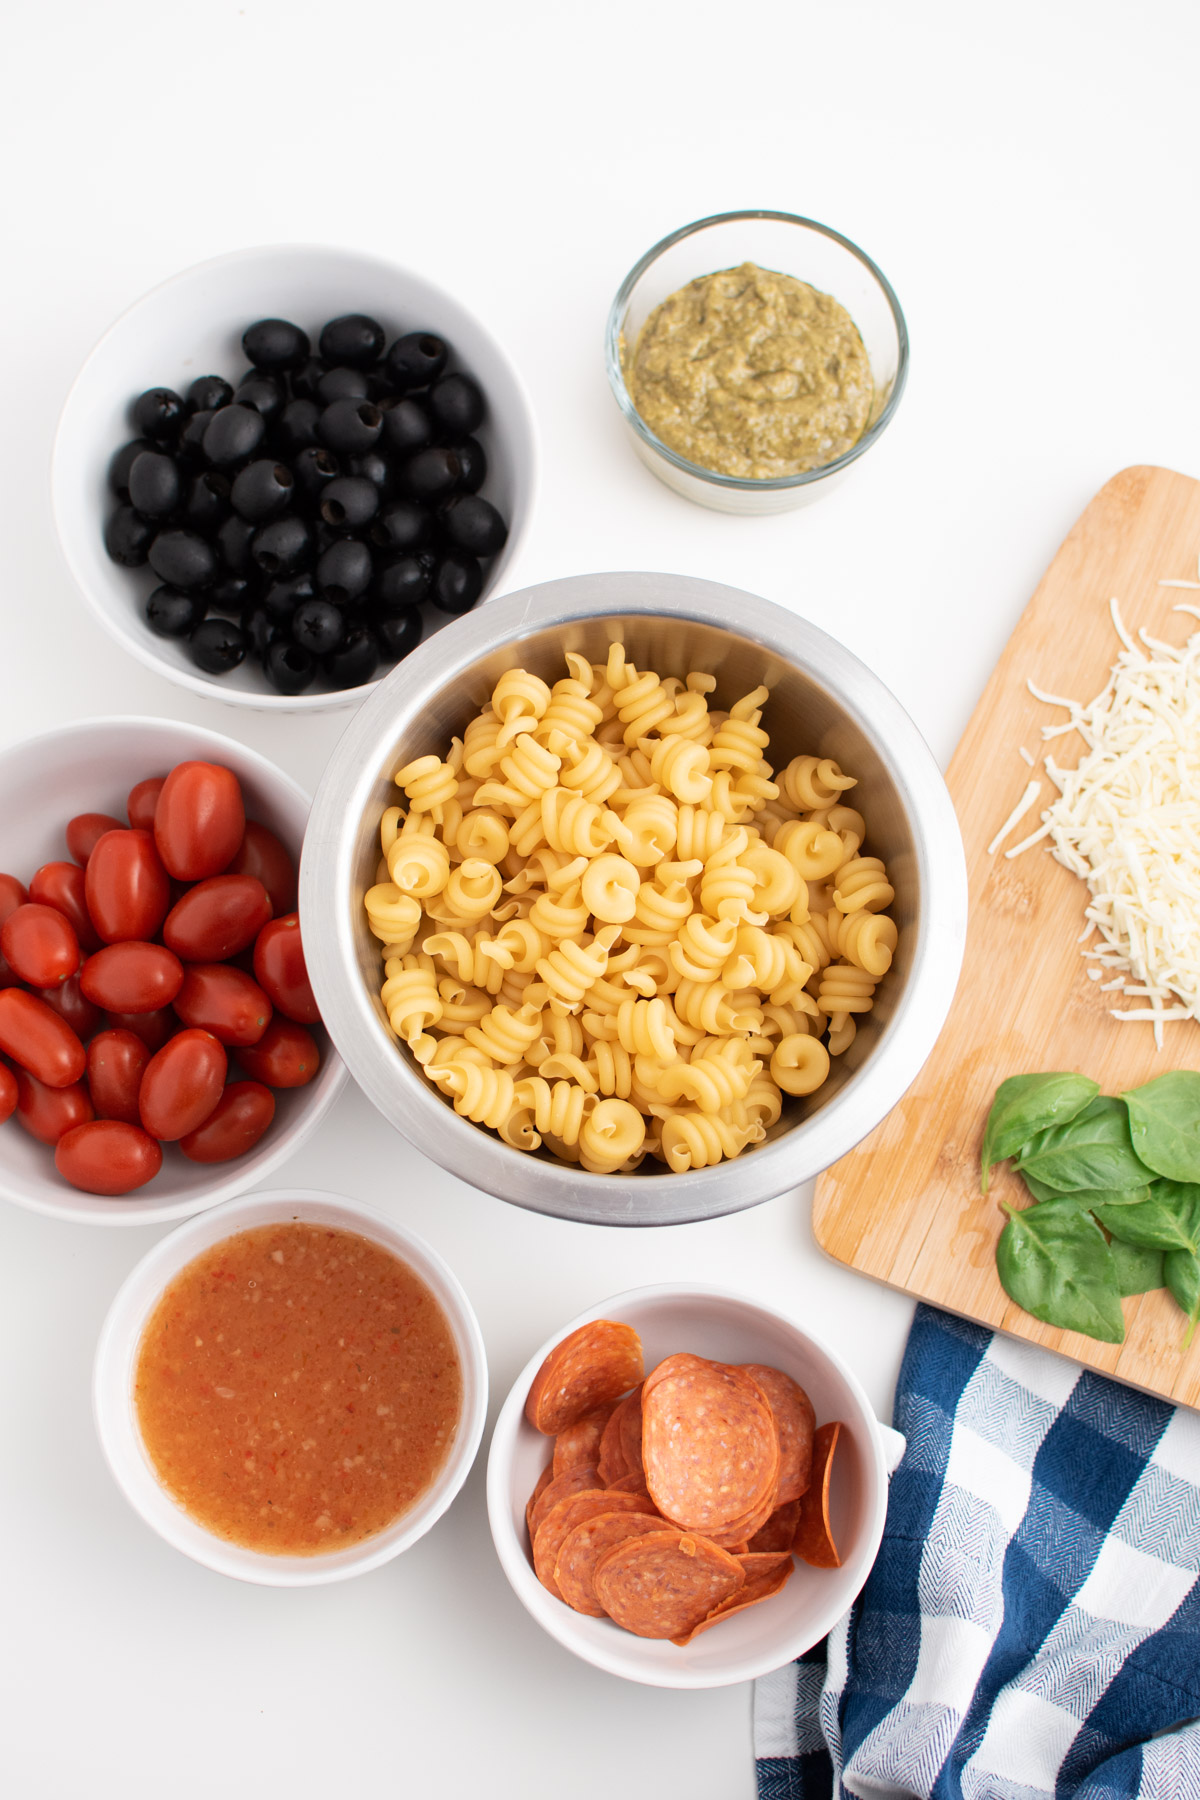 Pizza pasta salad ingredients in white bowls on white table next to cutting board.